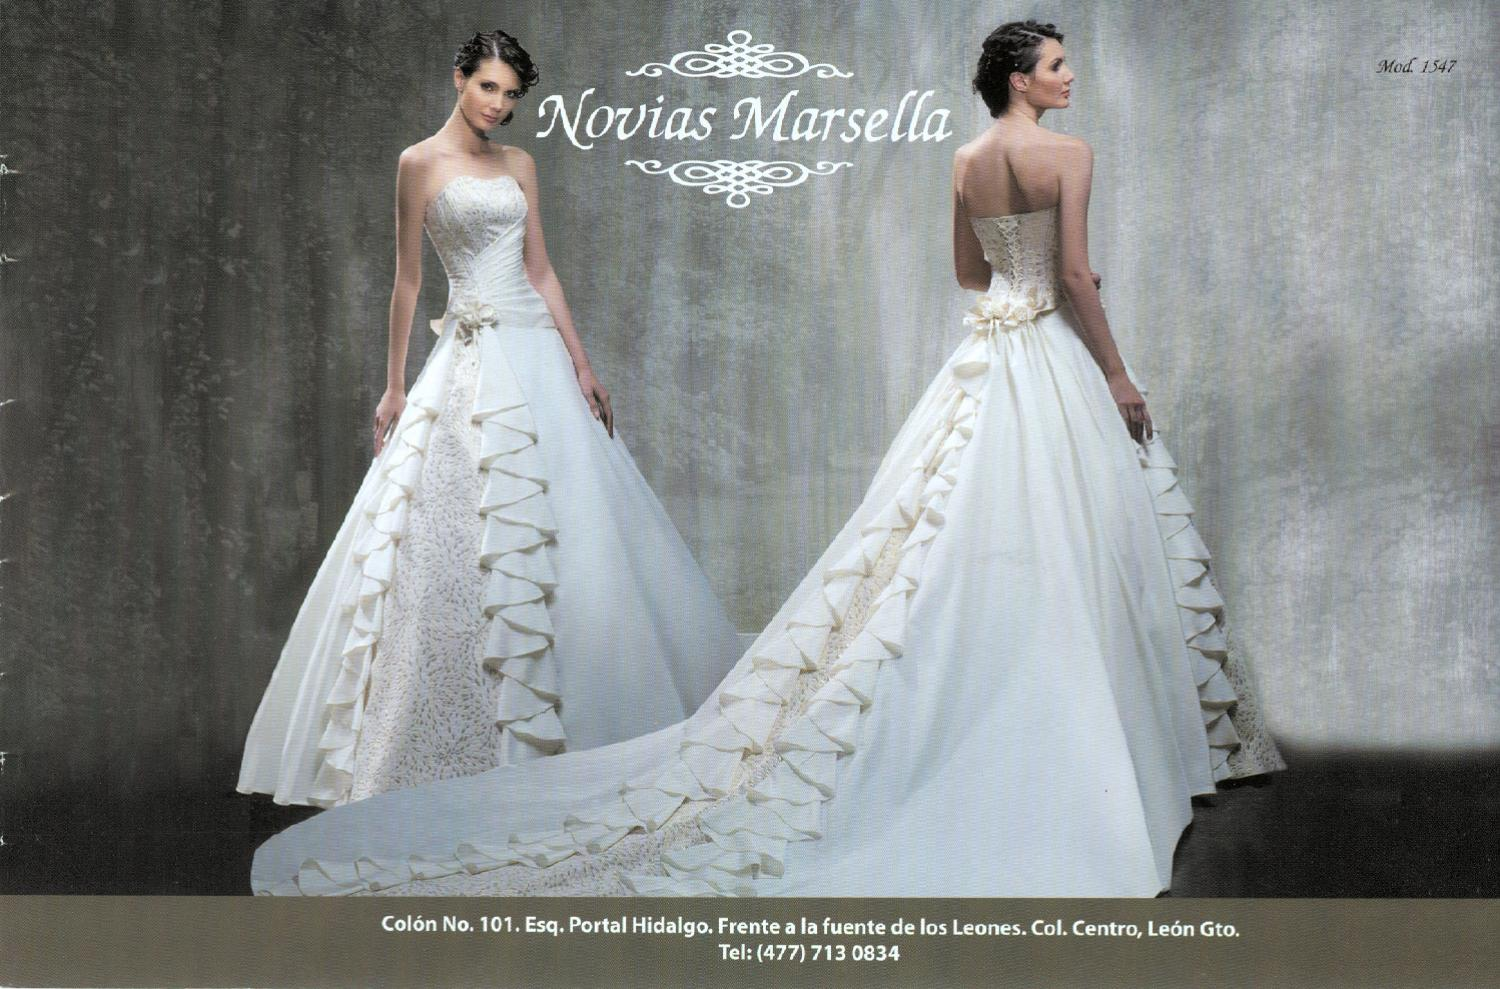 Novias Marsella By Leslie Lira Issuu